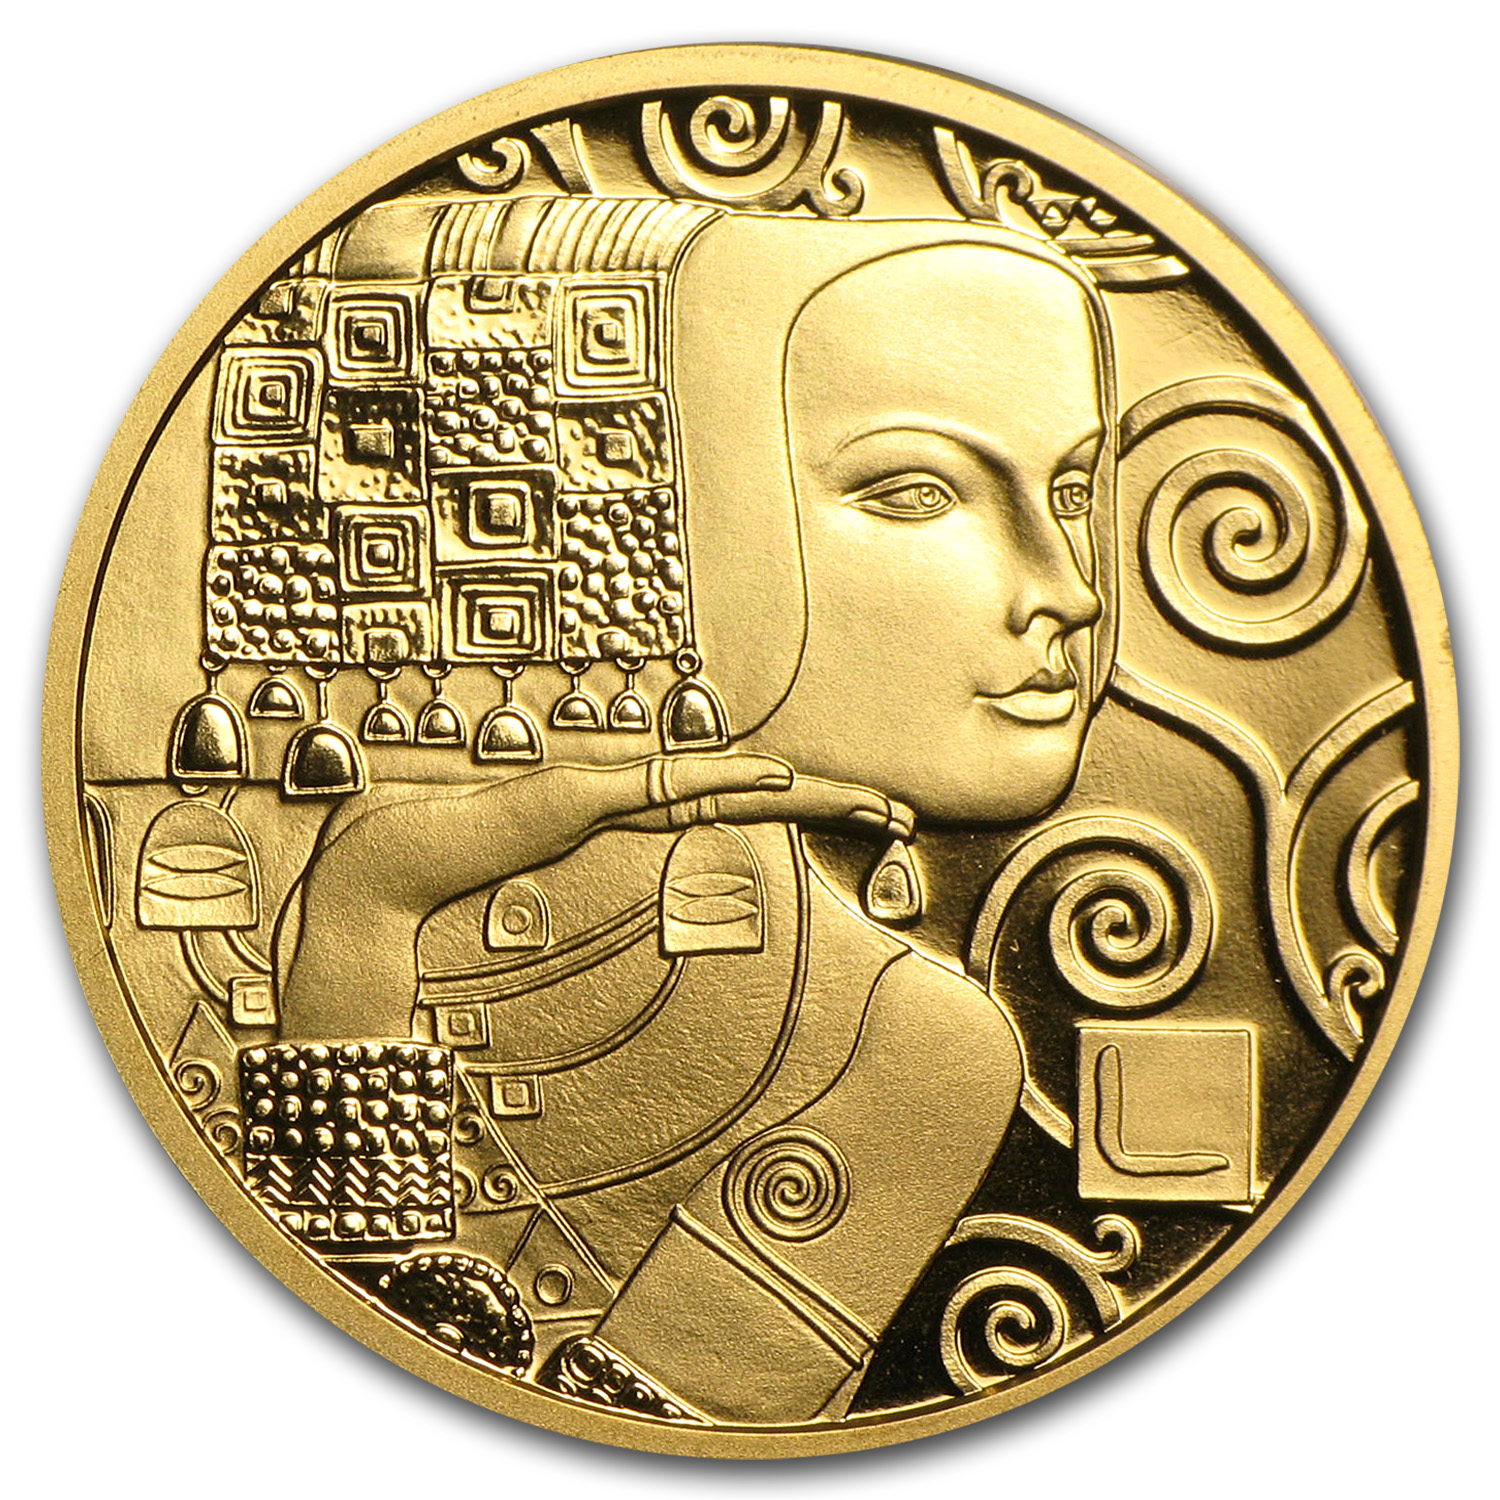 2013 Austria Gold Proof €50 Klimt Series: The Expectation